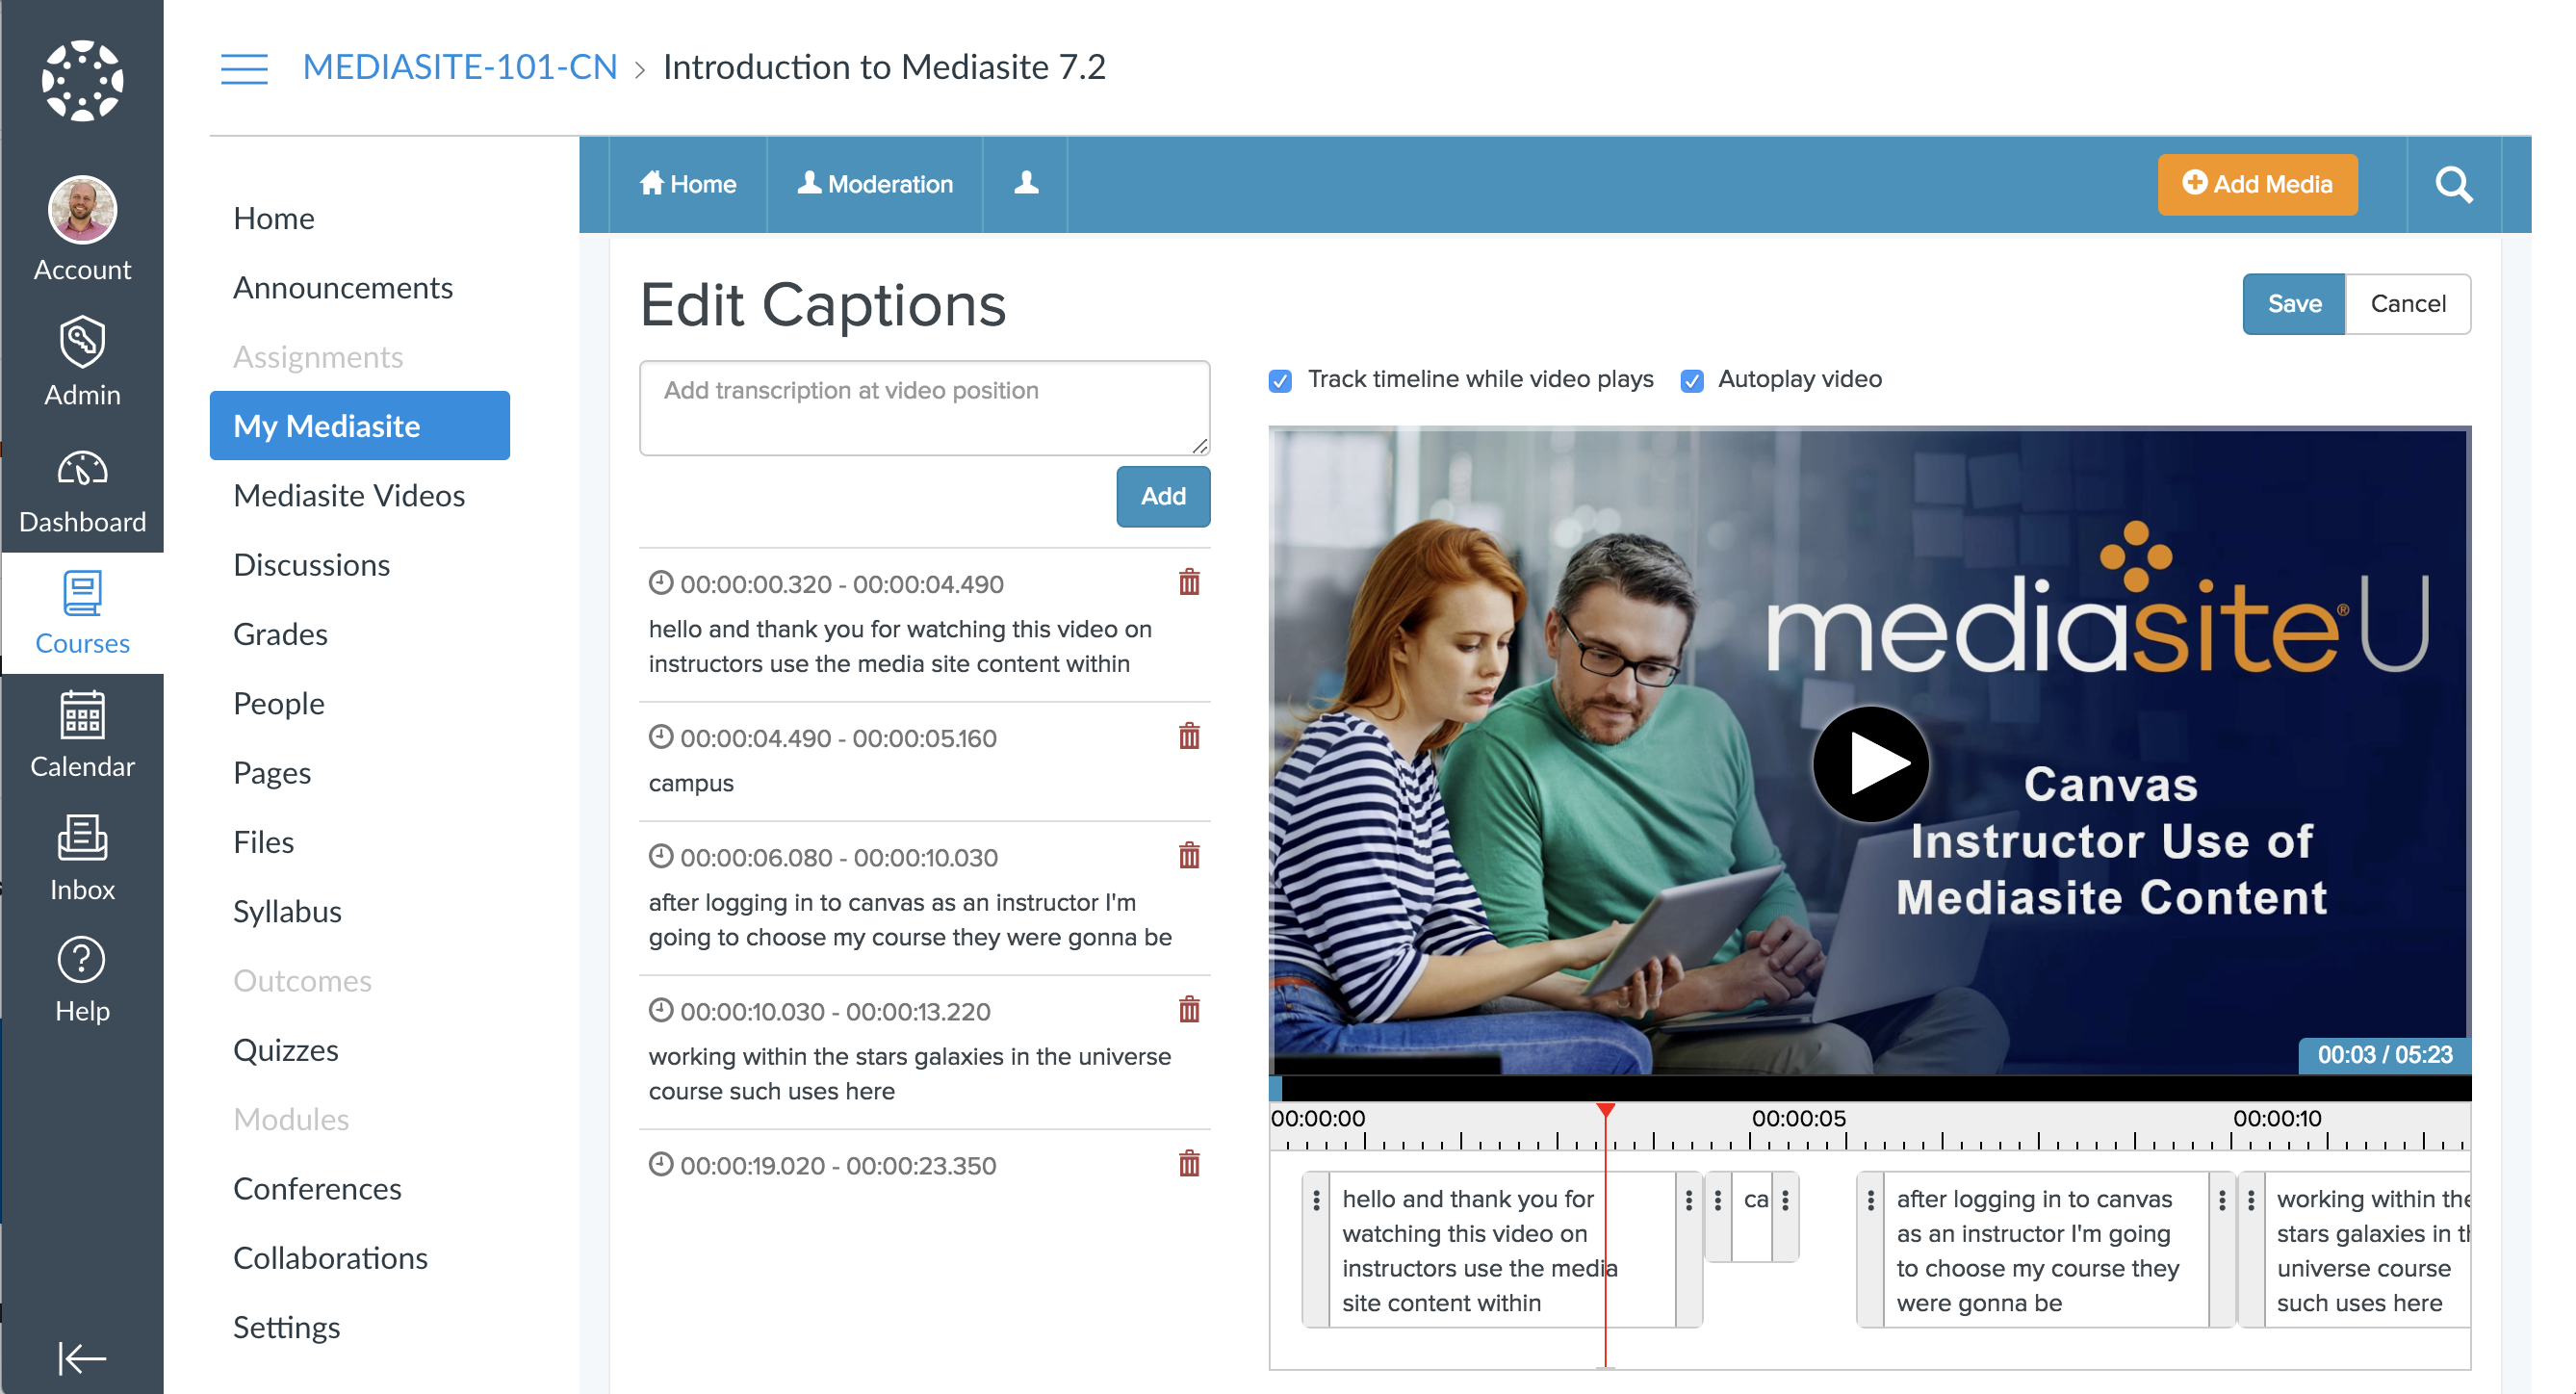 Editing captions from Canvas